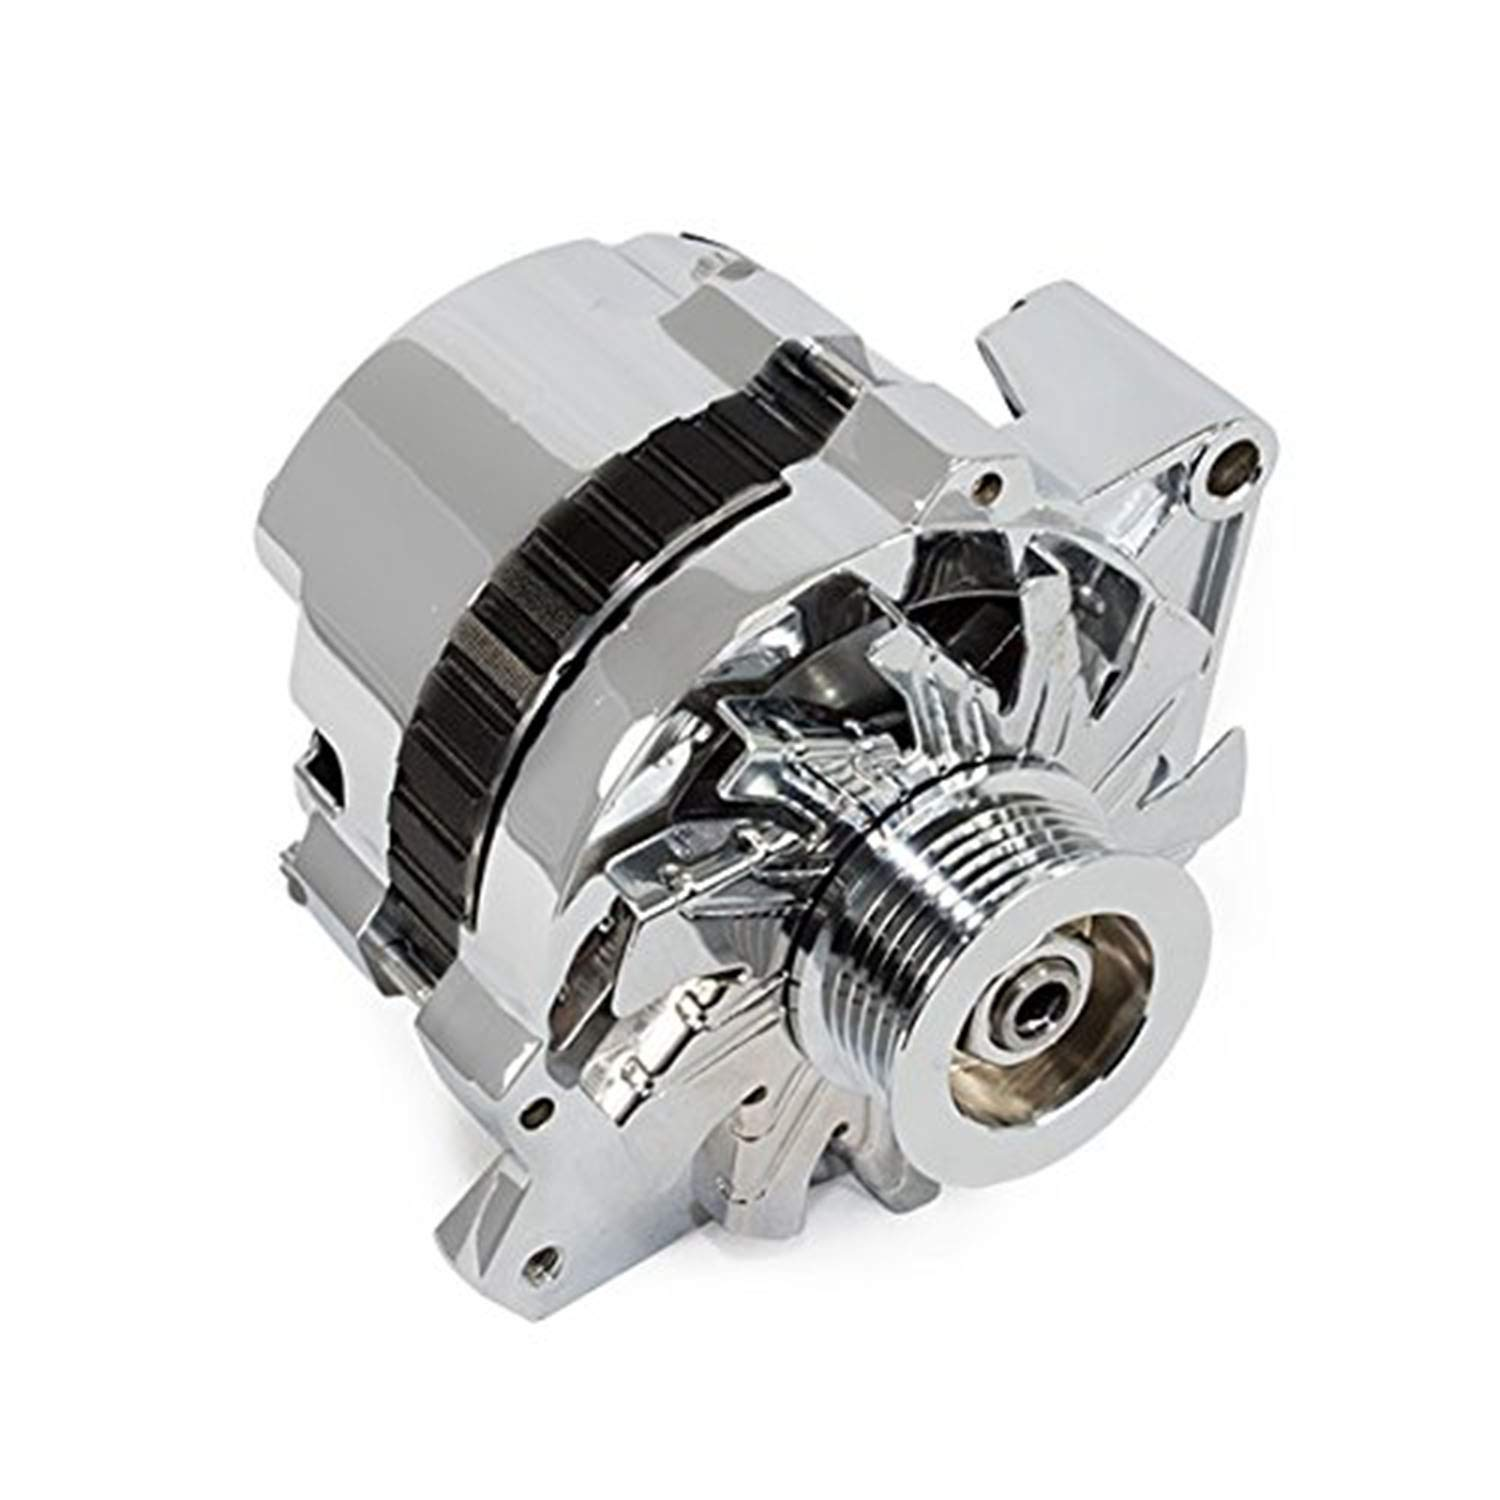 A-Team Performance GM CS130 Style 160 Amp Alternator with Serpentine Pulley